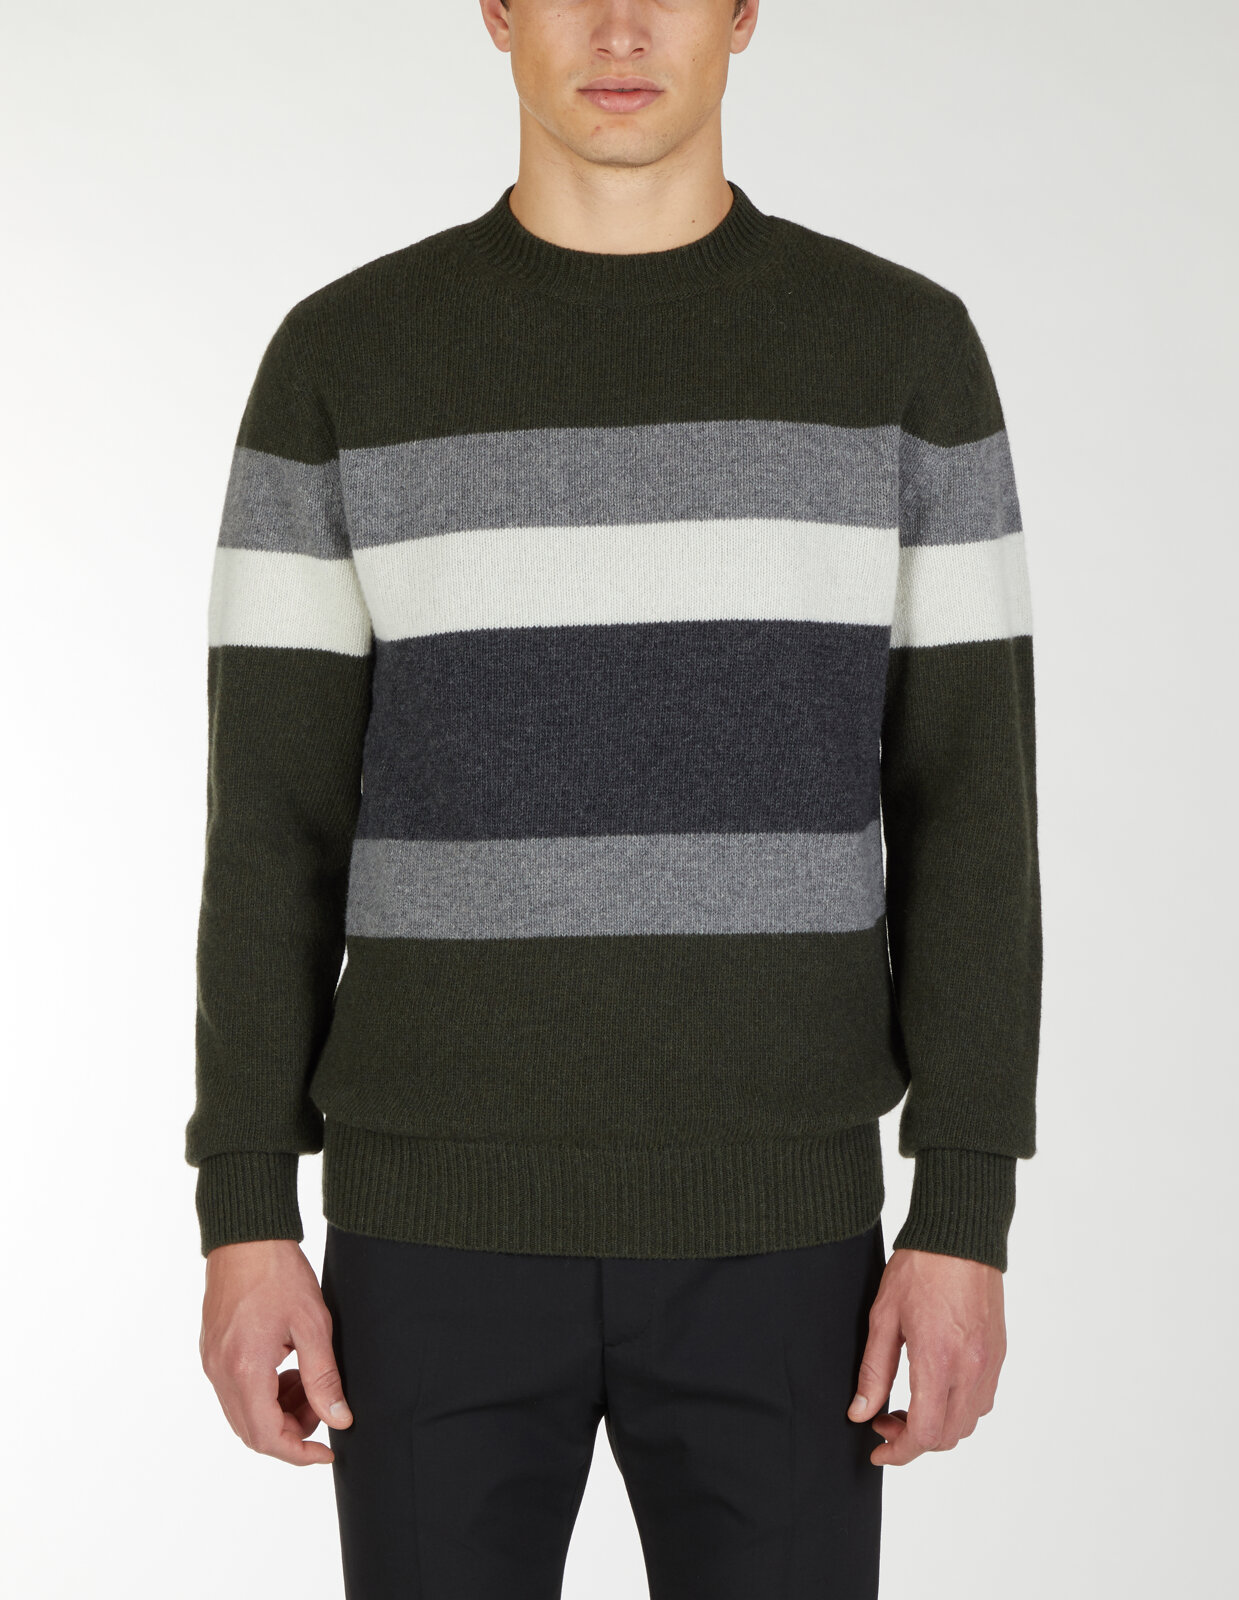 Round Neck Sweater With Horizontal Lines - Les Hommes